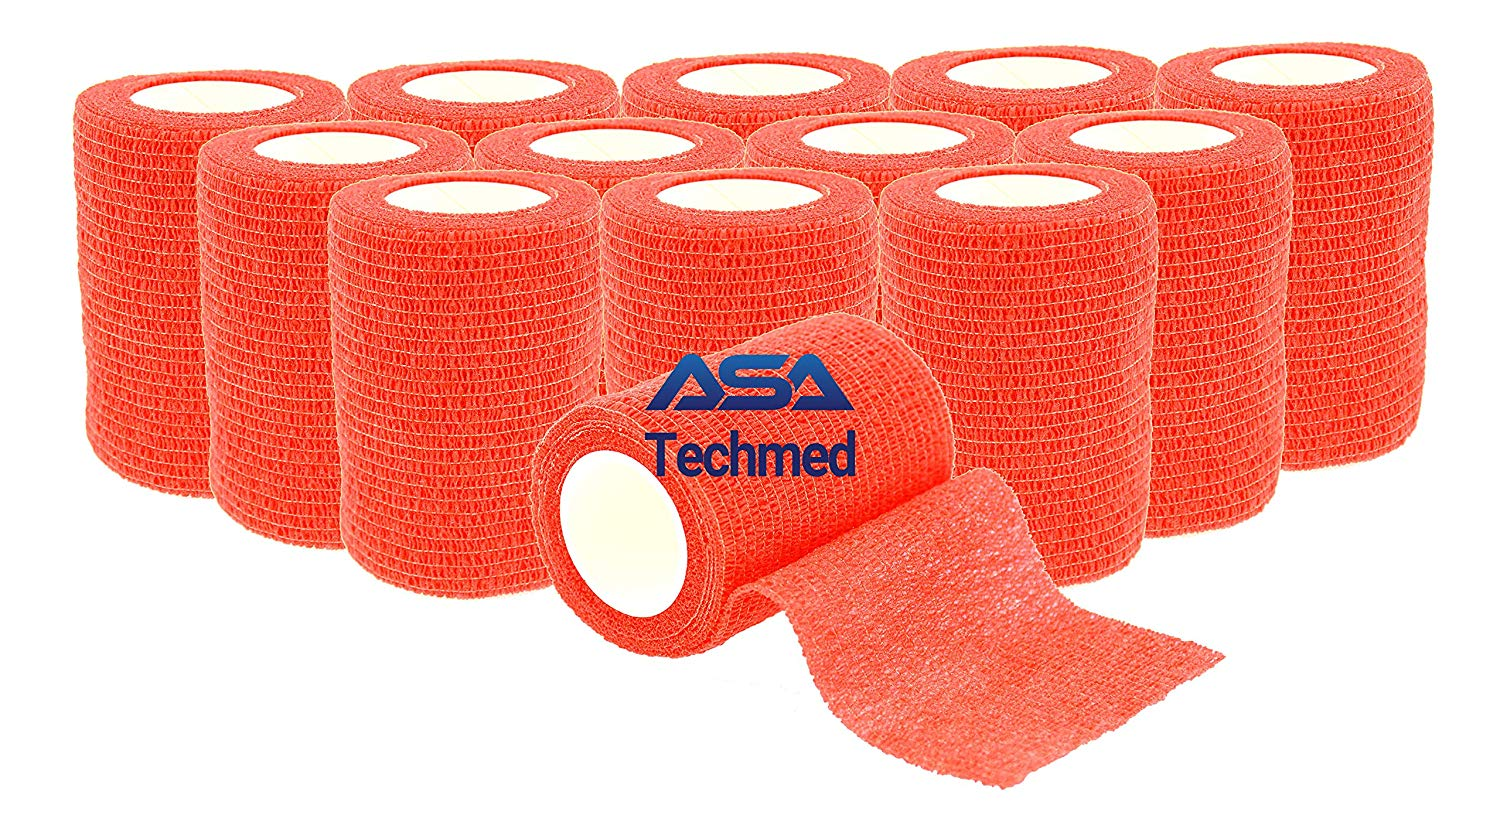 """12 - Pack, 3"""" x 5 Yards, Self-Adherent Cohesive Tape, Strong Sports Tape for Wrist, Ankle Sprains & Swelling, Self-Adhesive Bandage Rolls (Red)"""